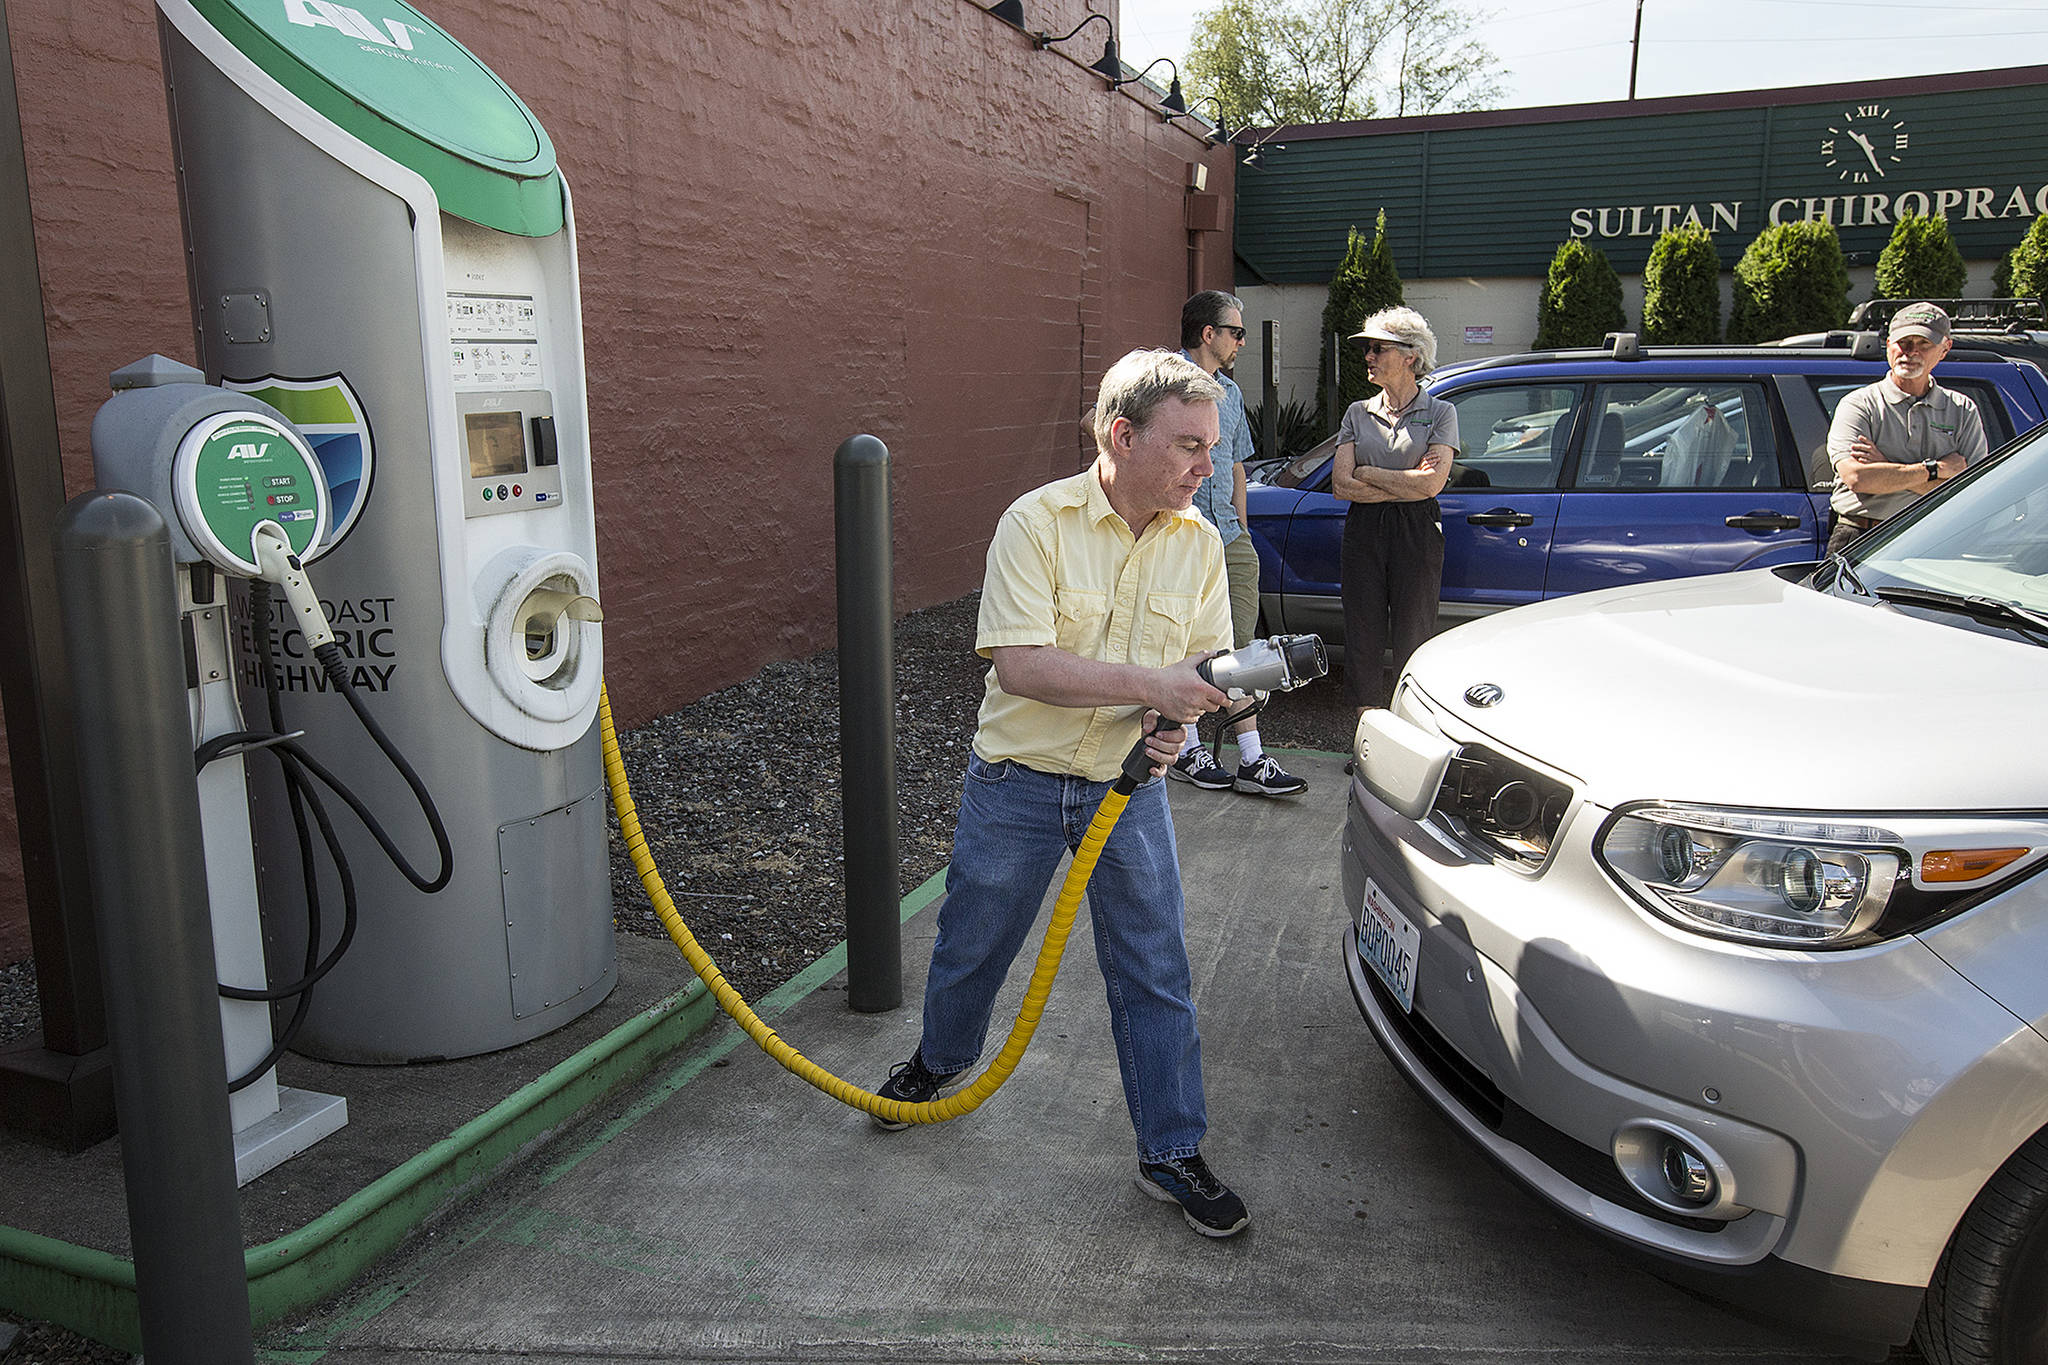 Brian Henderson, of Renton, plugs in his Kia Soul EV, an electric vehicle, June 7, 2017 at a charging station in Sultan during a trip from Everett's city hall to Spokane's city hall late to demonstrate the convenience of charging locations along U.S. 2. The Snohomish County PUD offers incentives for its customers who buy an EV and install a level 2 charging station at home. (Ian Terry / Herald file)